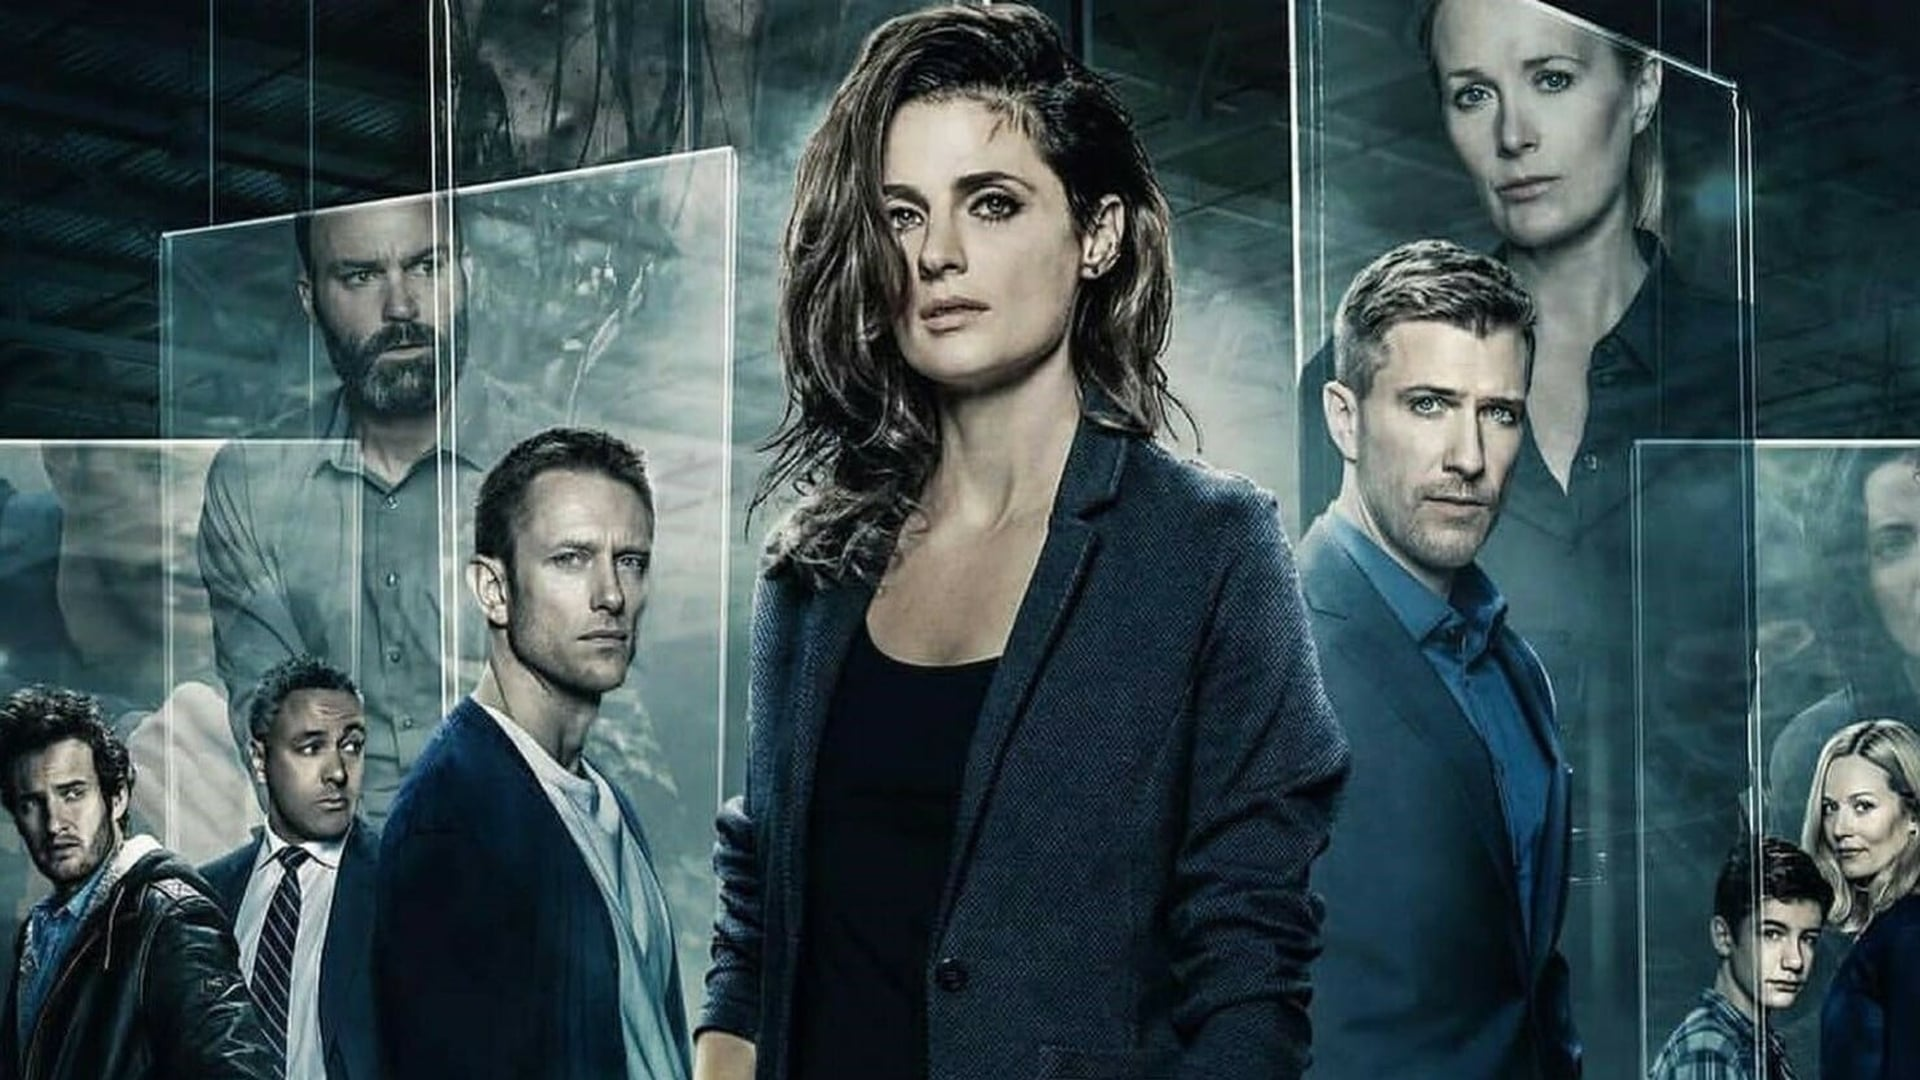 Third season Absentia will premiere in July